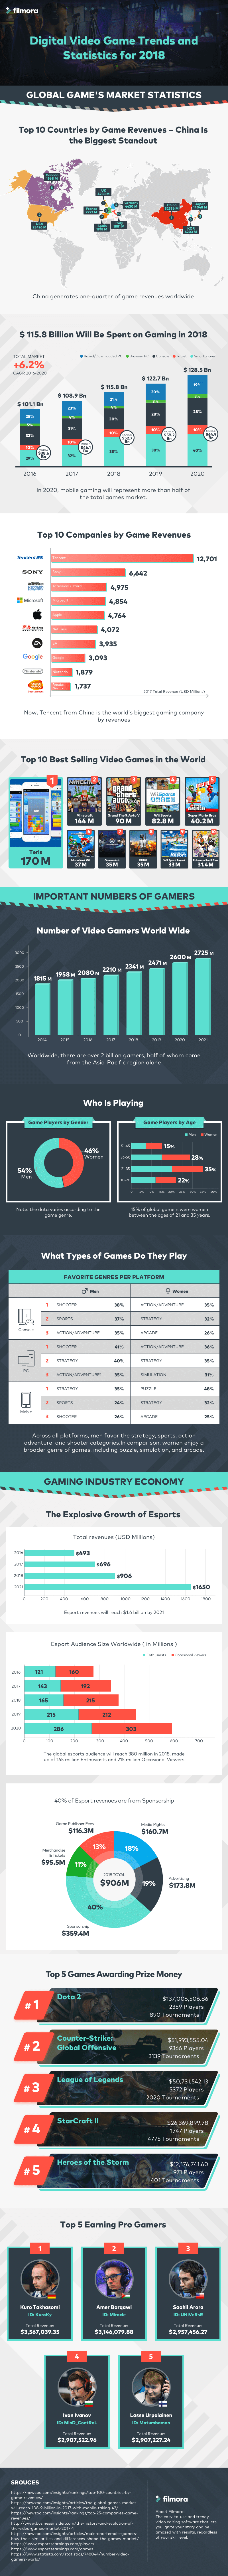 video-game-trends-and-stats